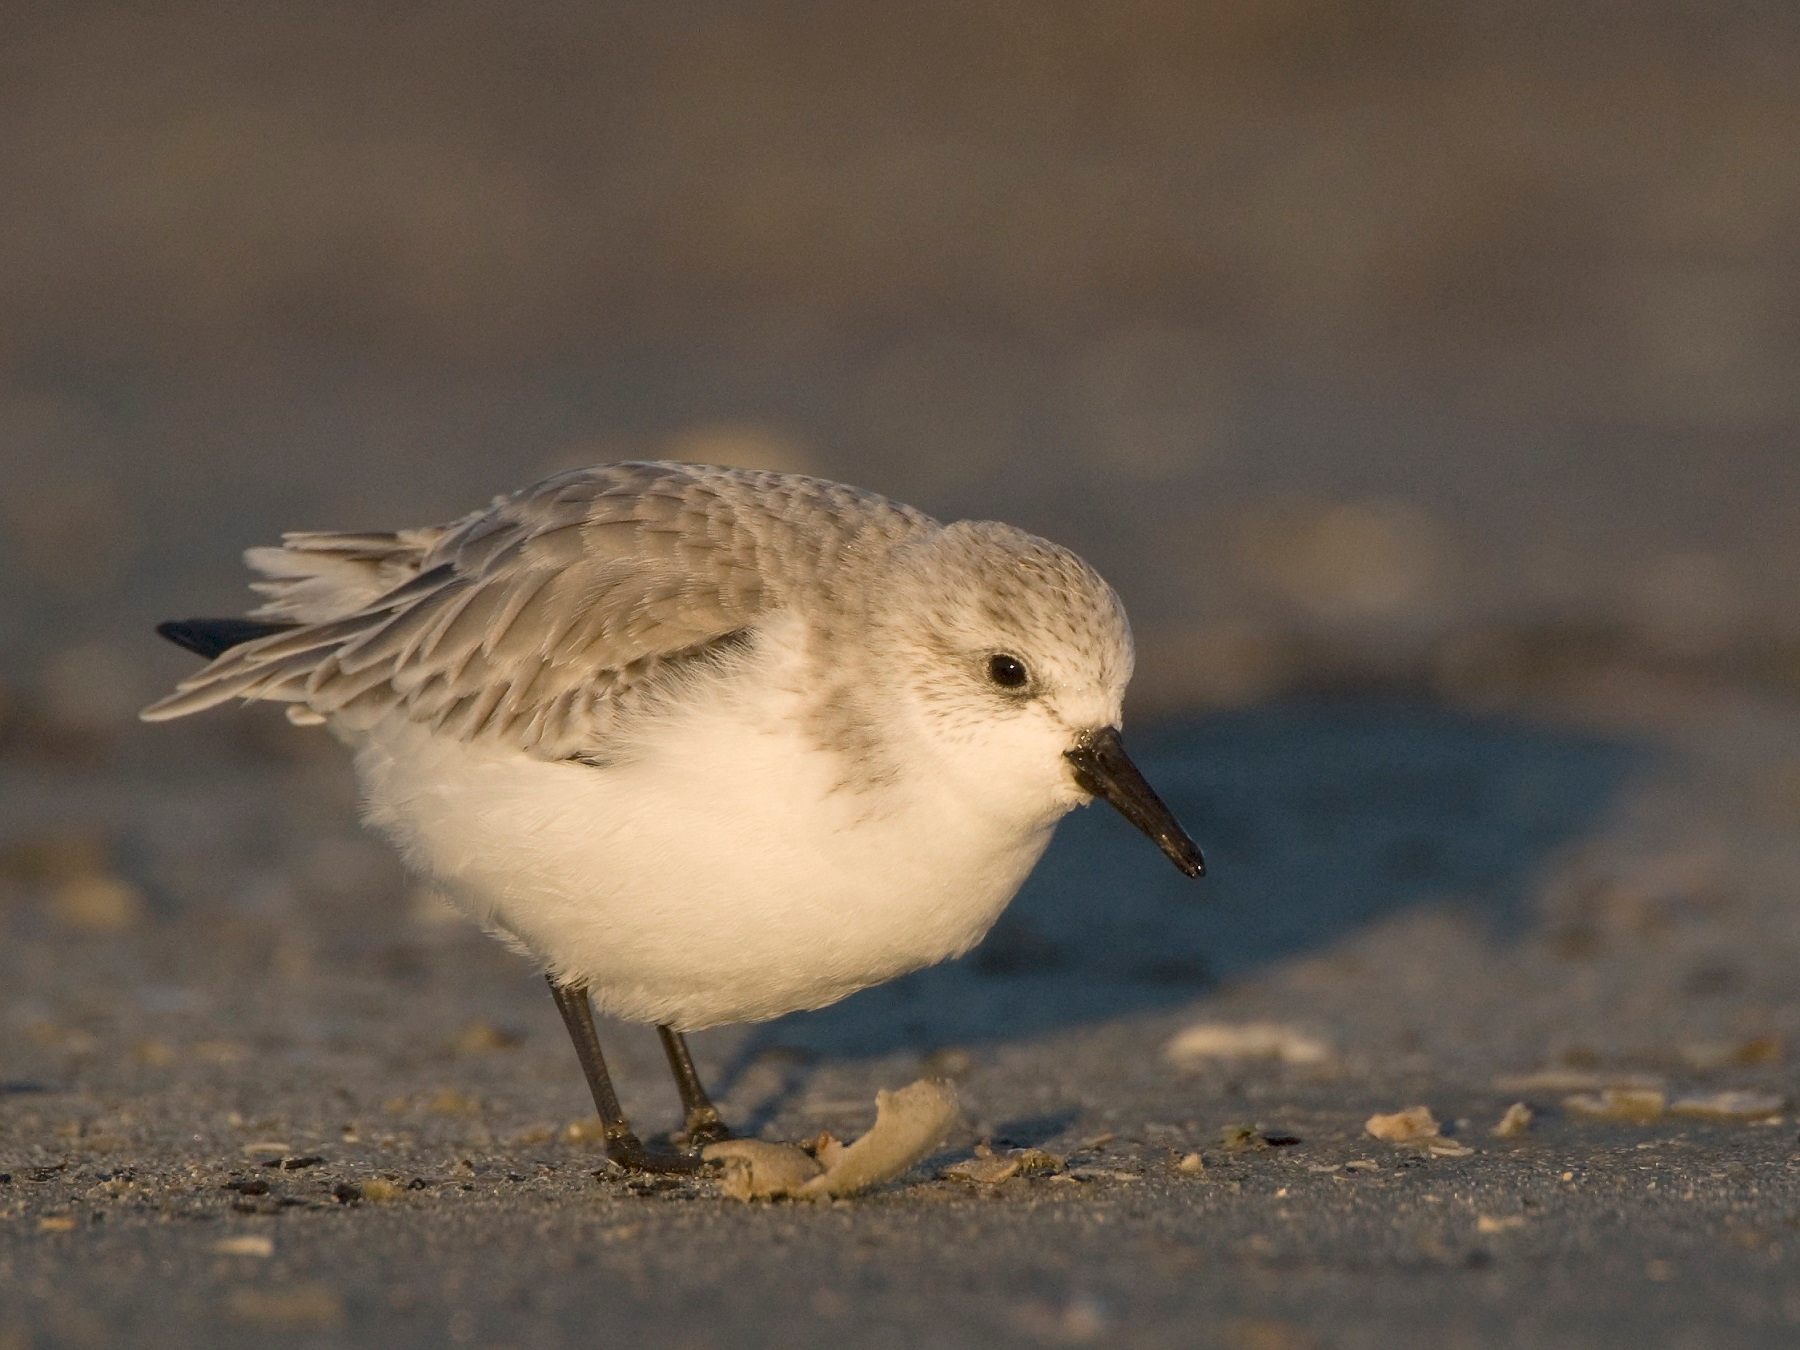 A sanderling on a cold winter's day on Schiermonnikoog, the Netherlands. Photo by Jeroen Reneerkens